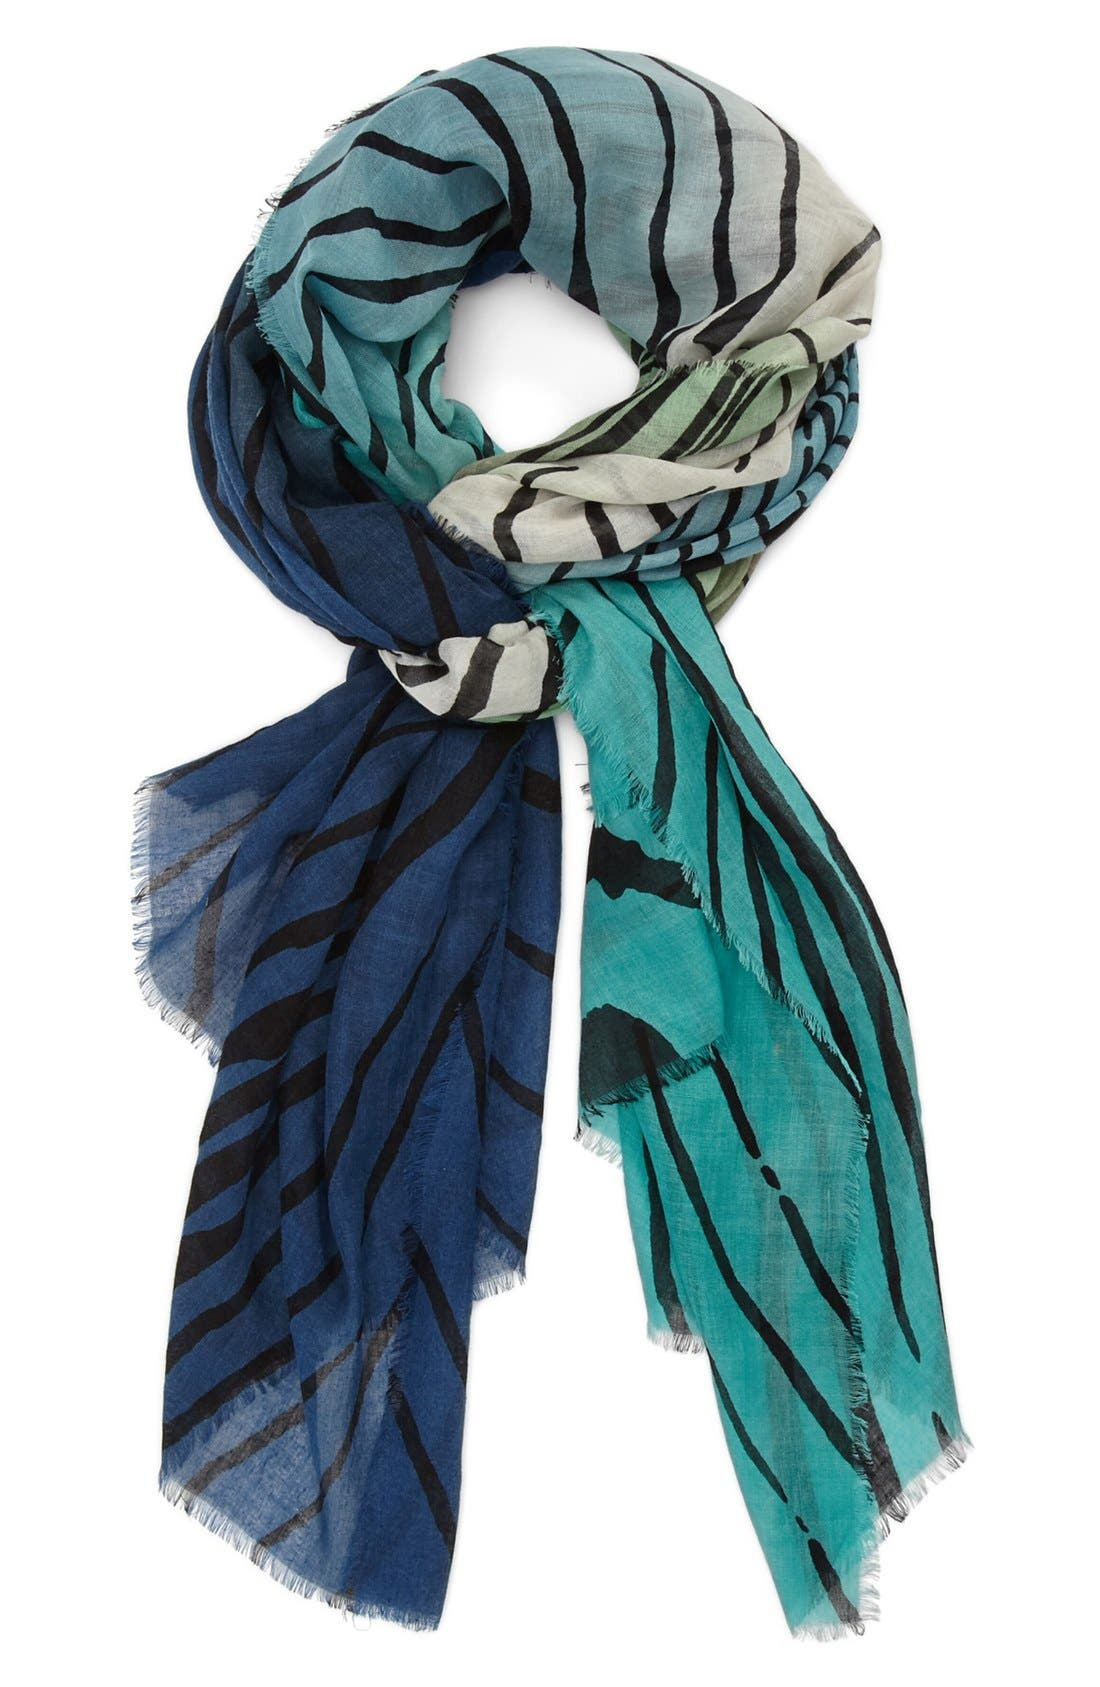 Alternate Image 1 Selected - Diane von Furstenberg 'Hanover' Scarf